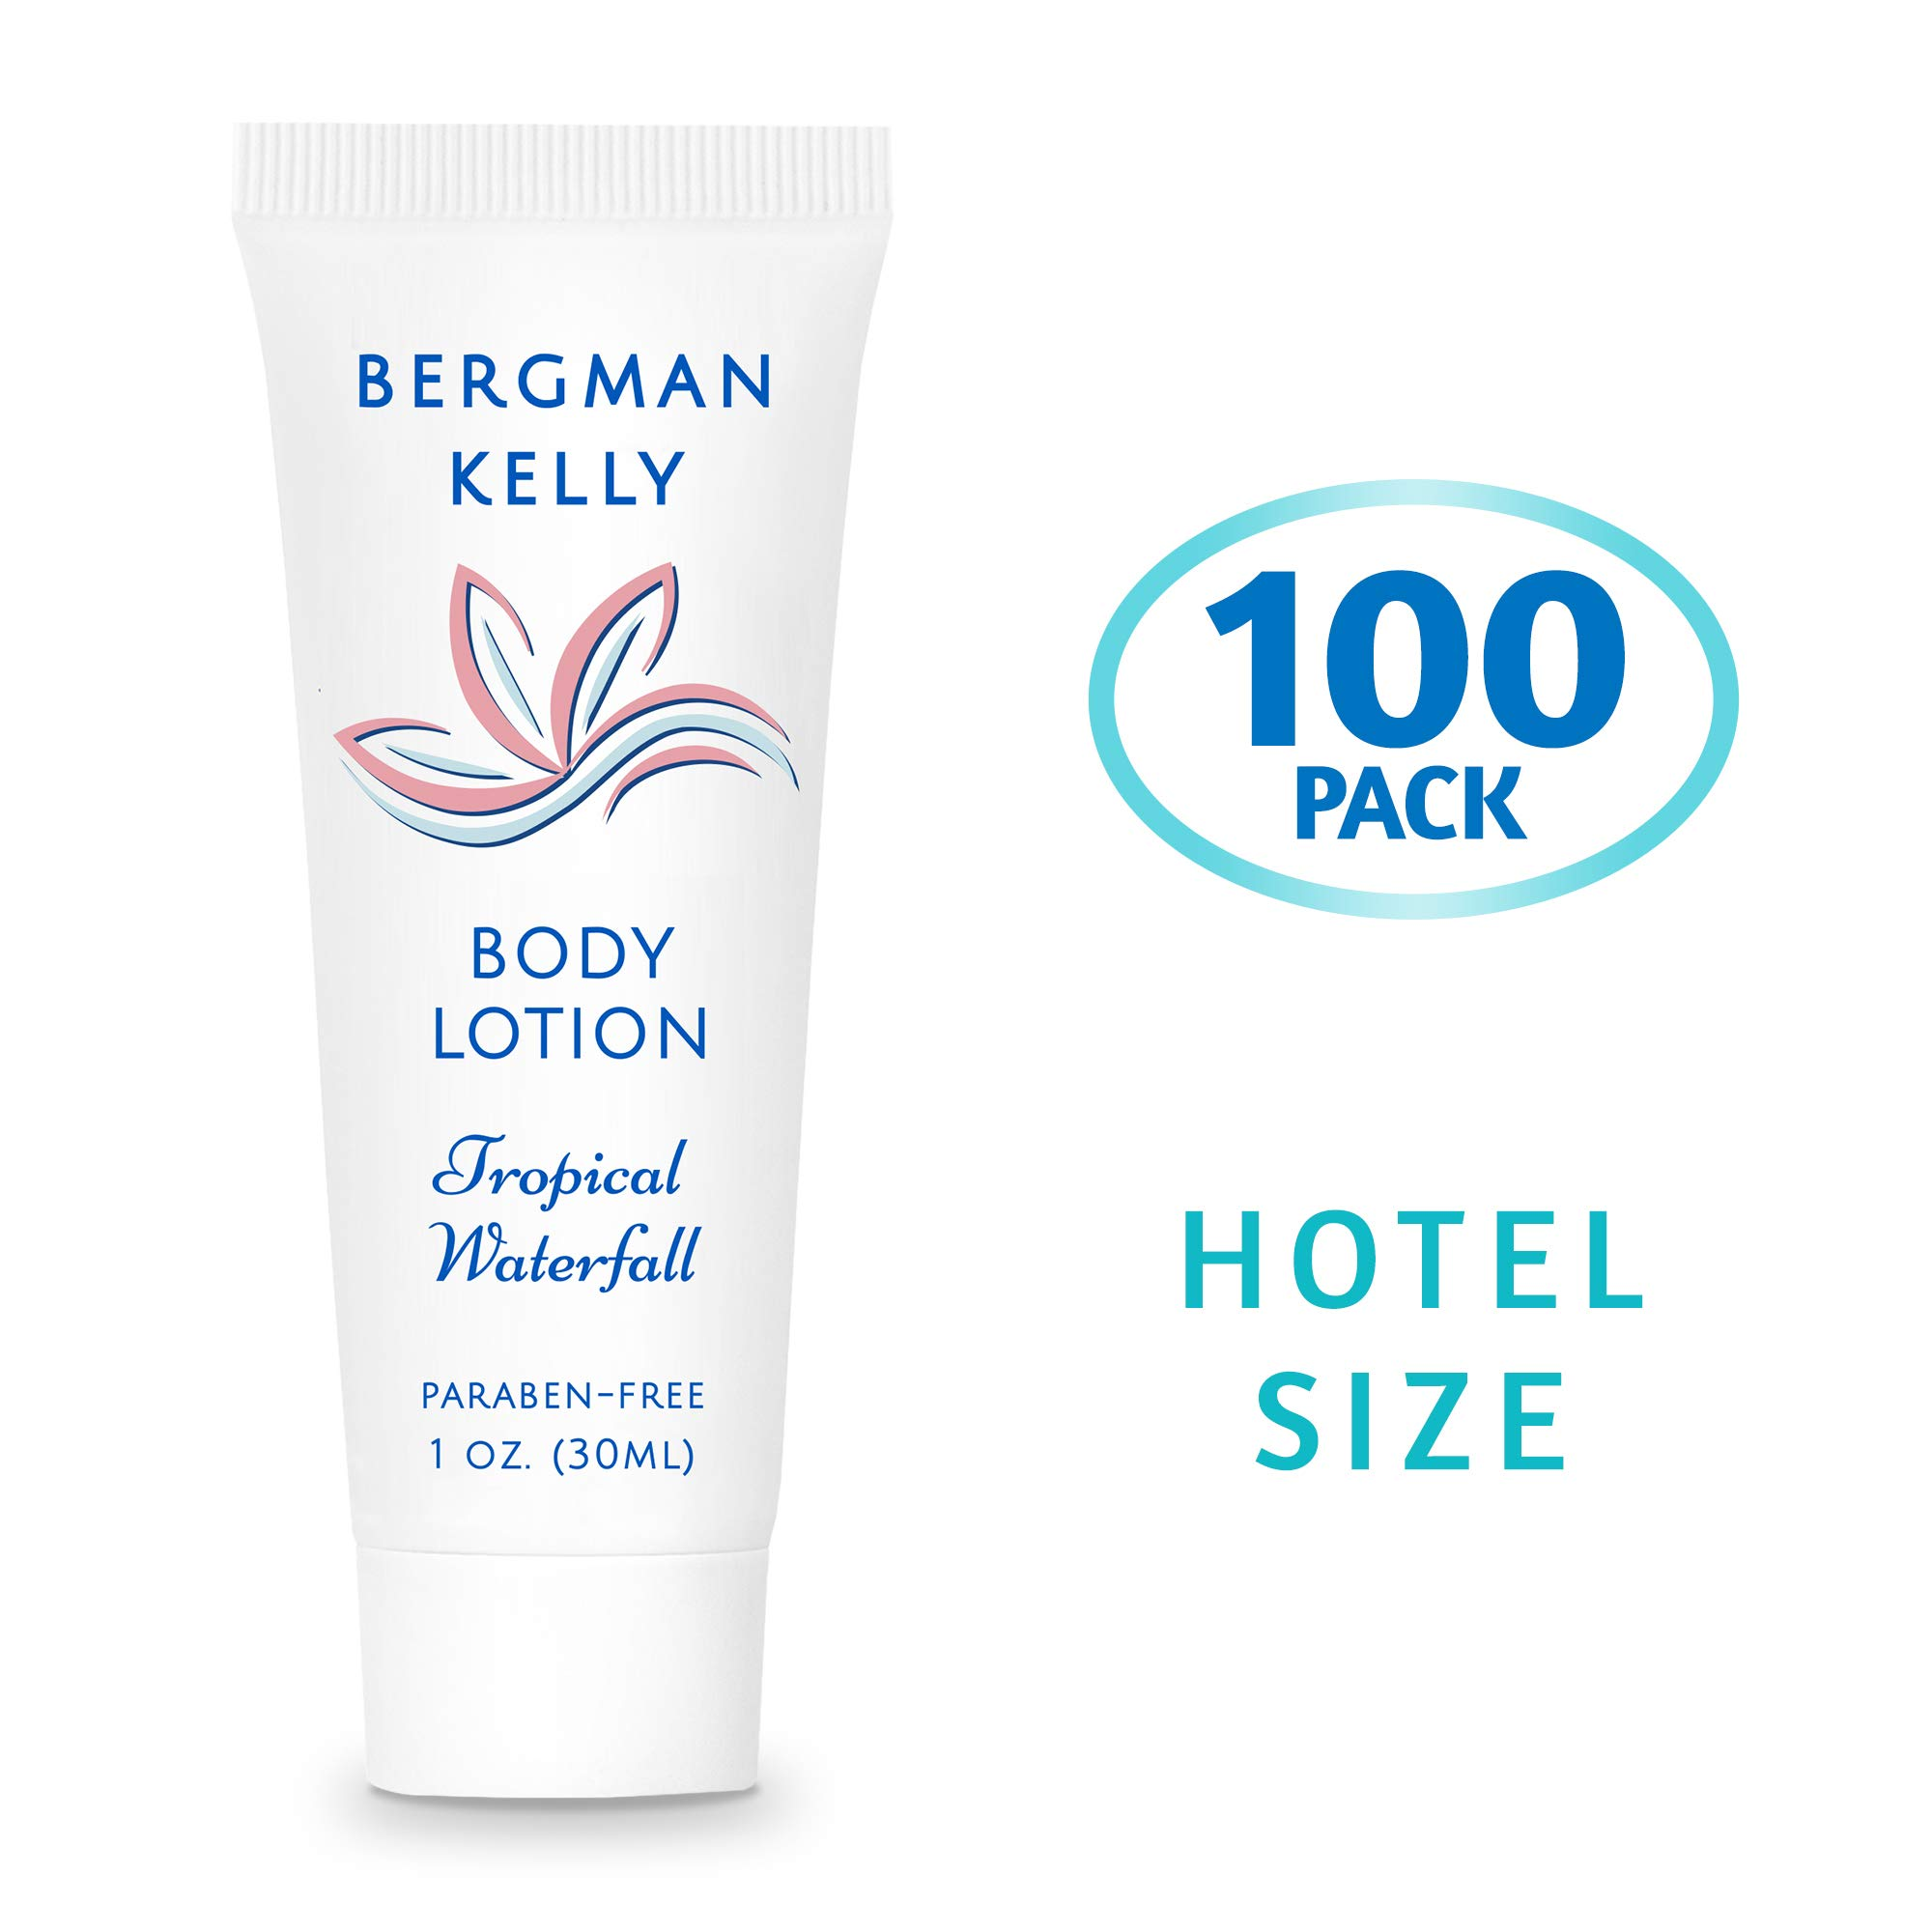 BERGMAN KELLY Travel Size Lotion (1 Fl Oz, 100 PK, Tropical Waterfall), Delight Your Guests with a Invigorating and Refreshing Body Lotion, Quality Mini and Small Size Guest Hotel Toiletries in Bulk by BERGMAN KELLY